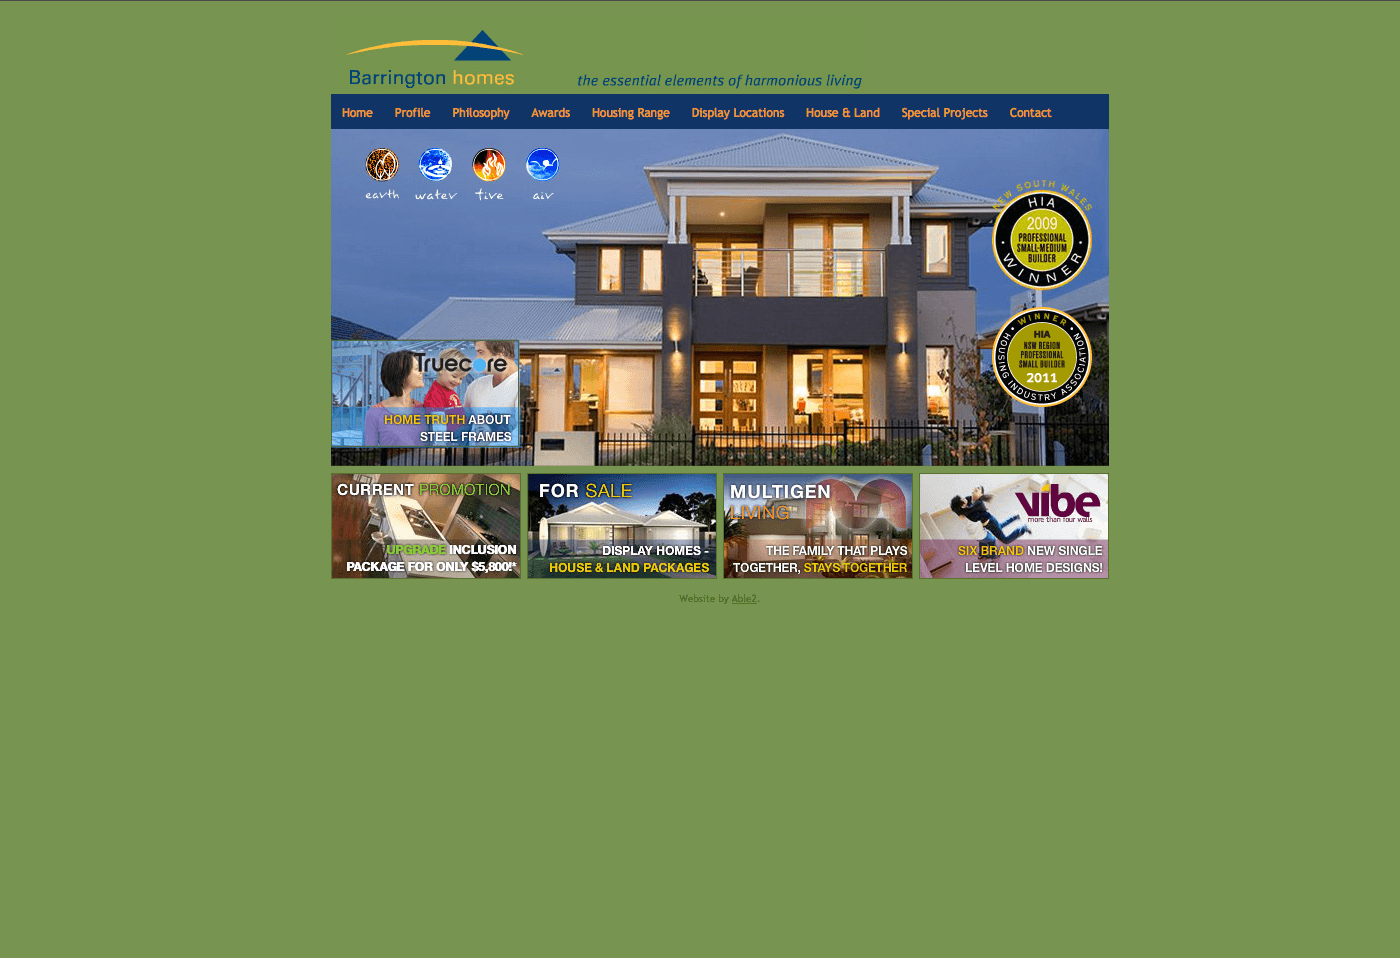 Able Video Barrington Homes Website